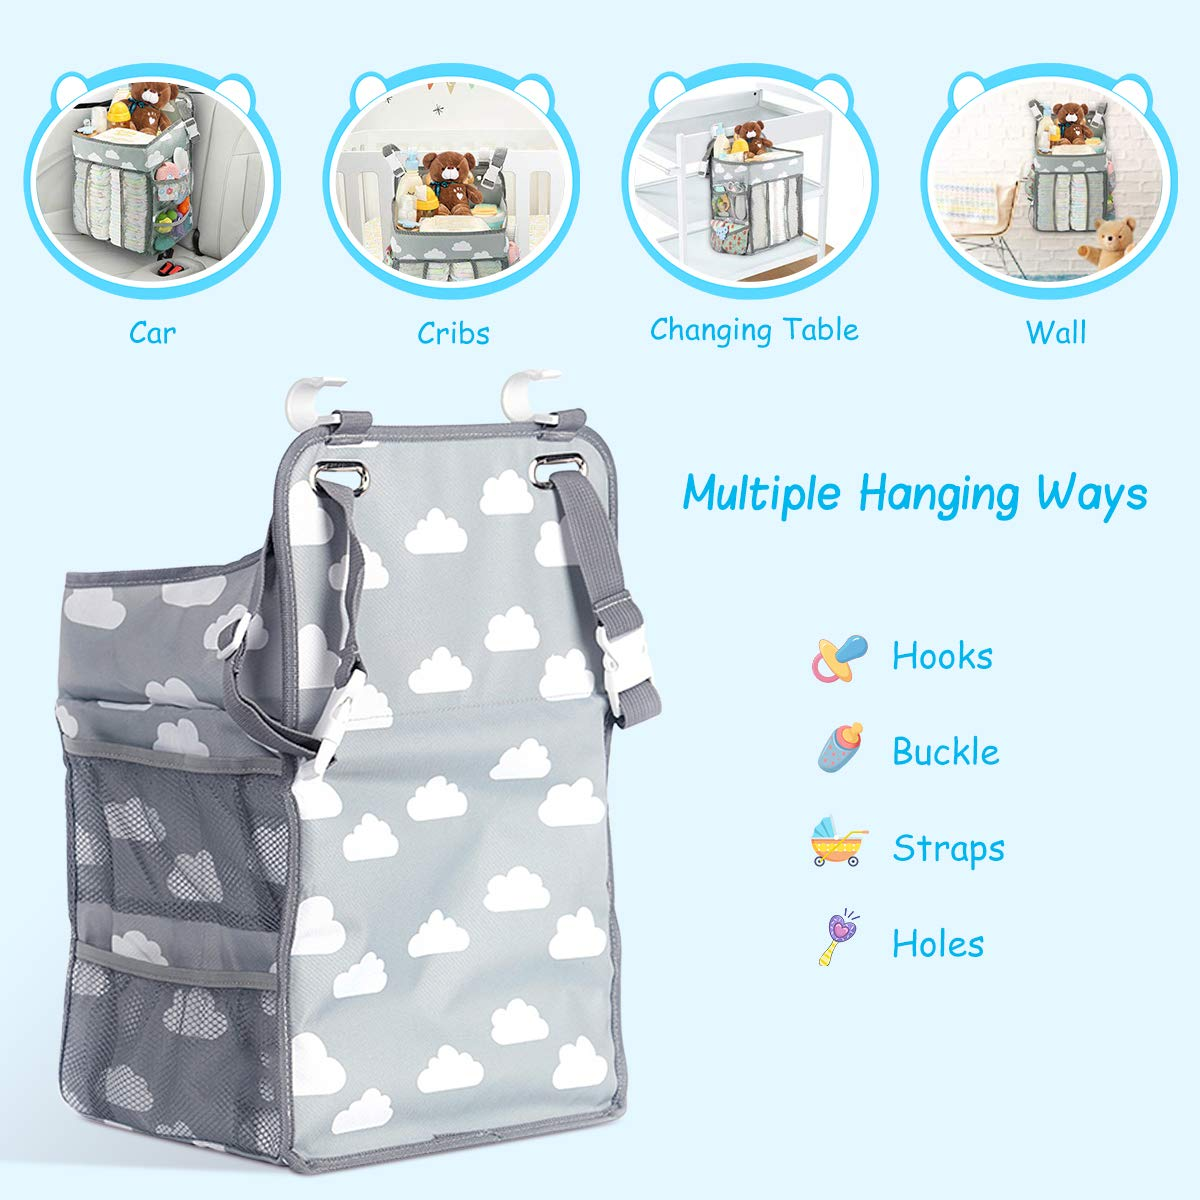 Elebor Nursery Organizer and Baby Diaper Caddy, Hanging Diaper Stacker Storage for Changing Table, Crib, Playyard or Wall - Nursery Organization & Baby Shower Gifts for Newborn (Coud)